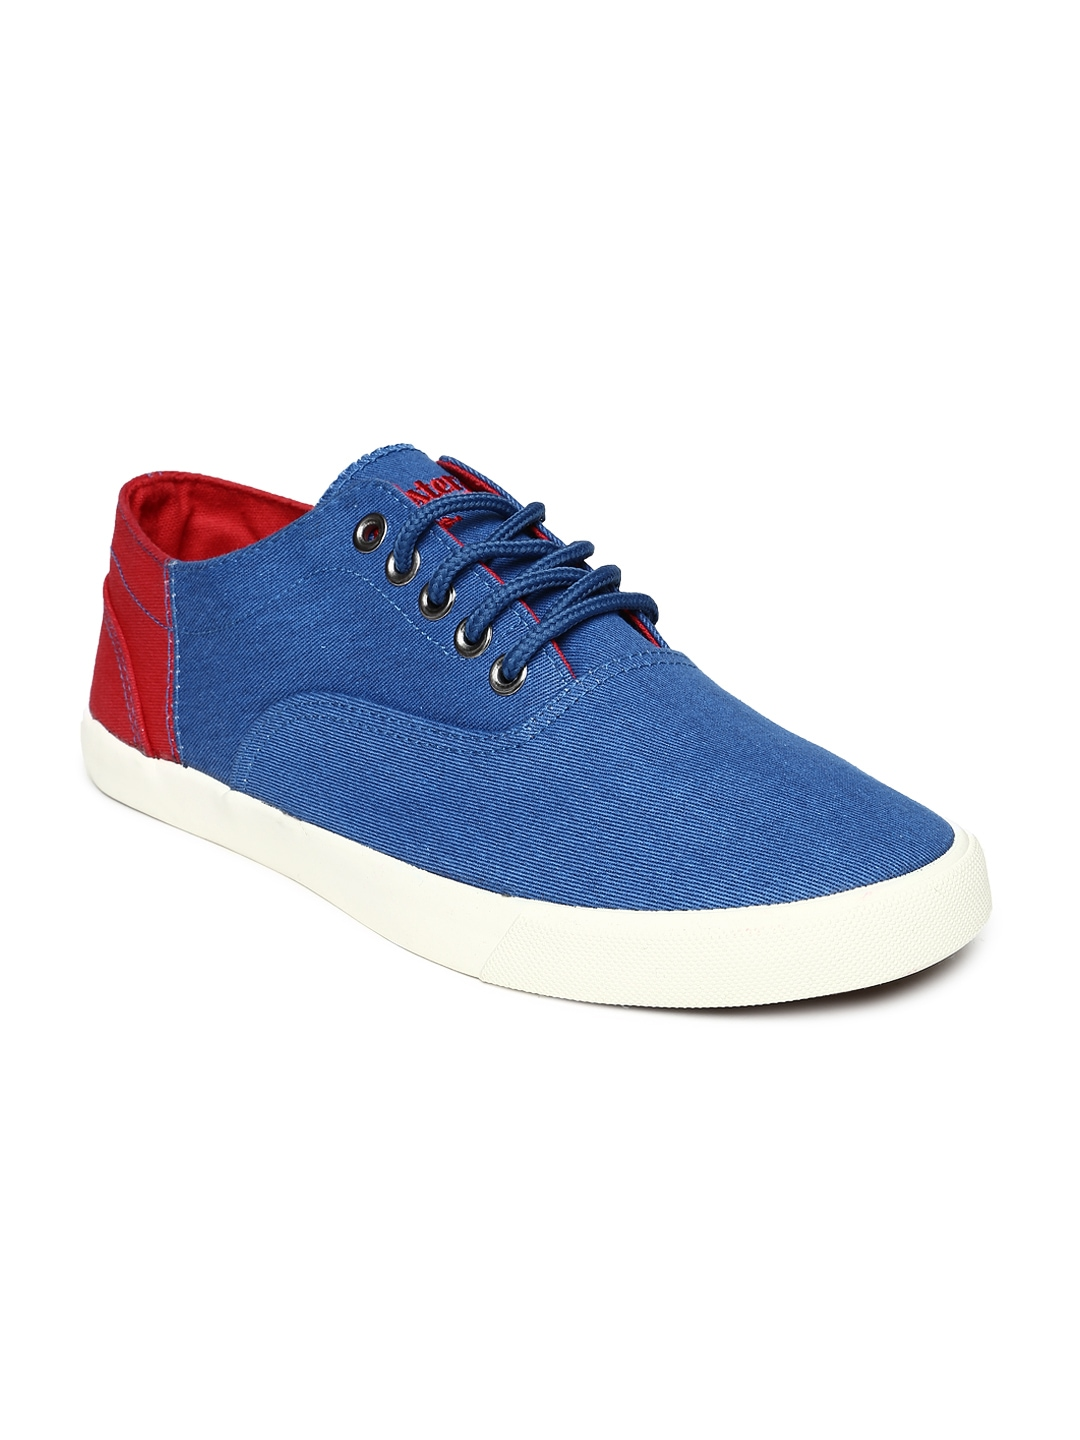 myntra roadster charcoal grey casual shoes 744623